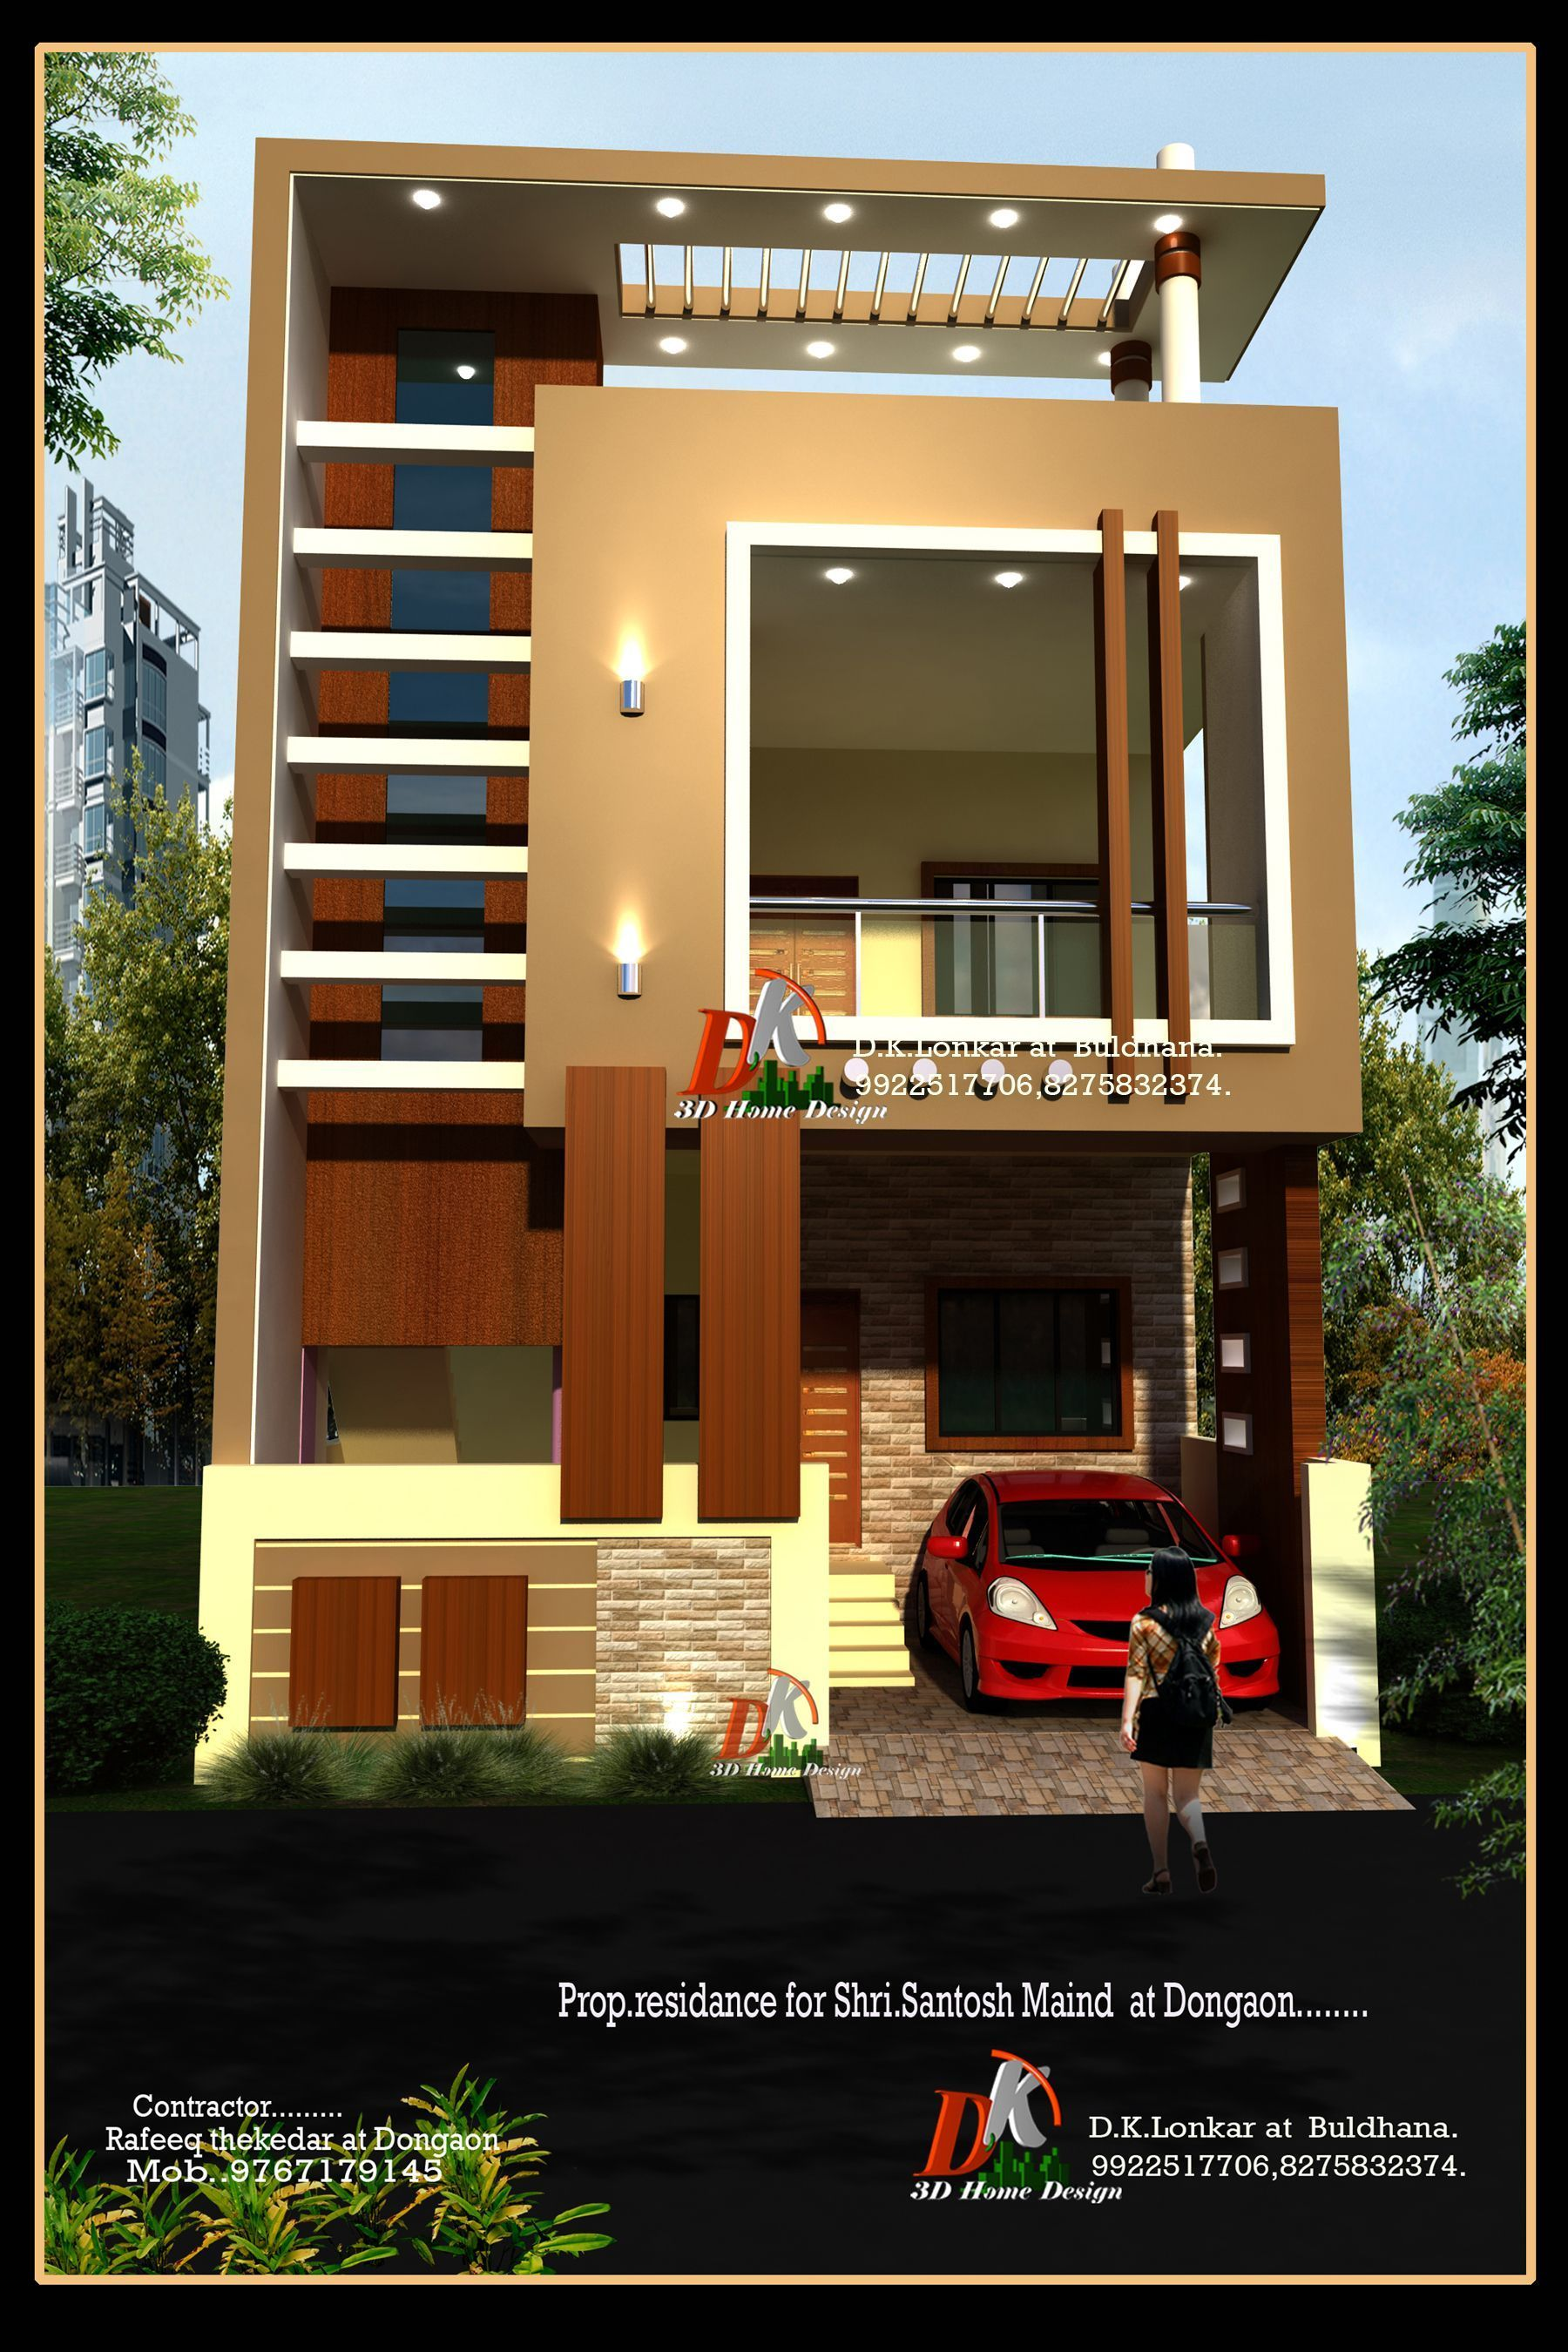 Wooden Thoons In Place Of The Brown Pillars For A Modern Classic Mix Feel With Images: Best 12 Home Design Plan 8x12m With 3 Bedrooms